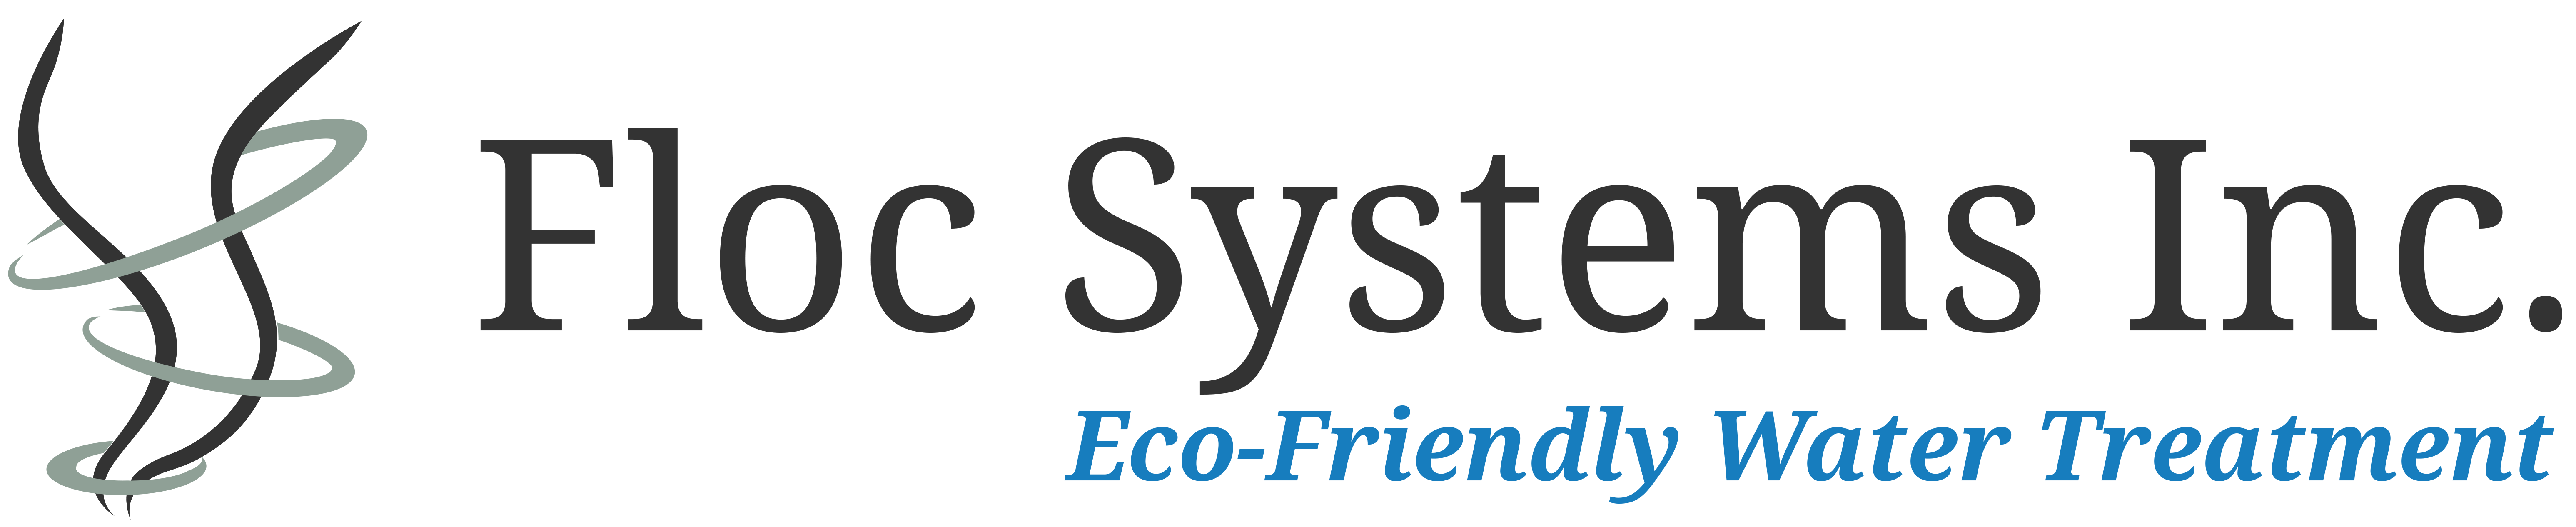 Floc Systems Inc. Logo